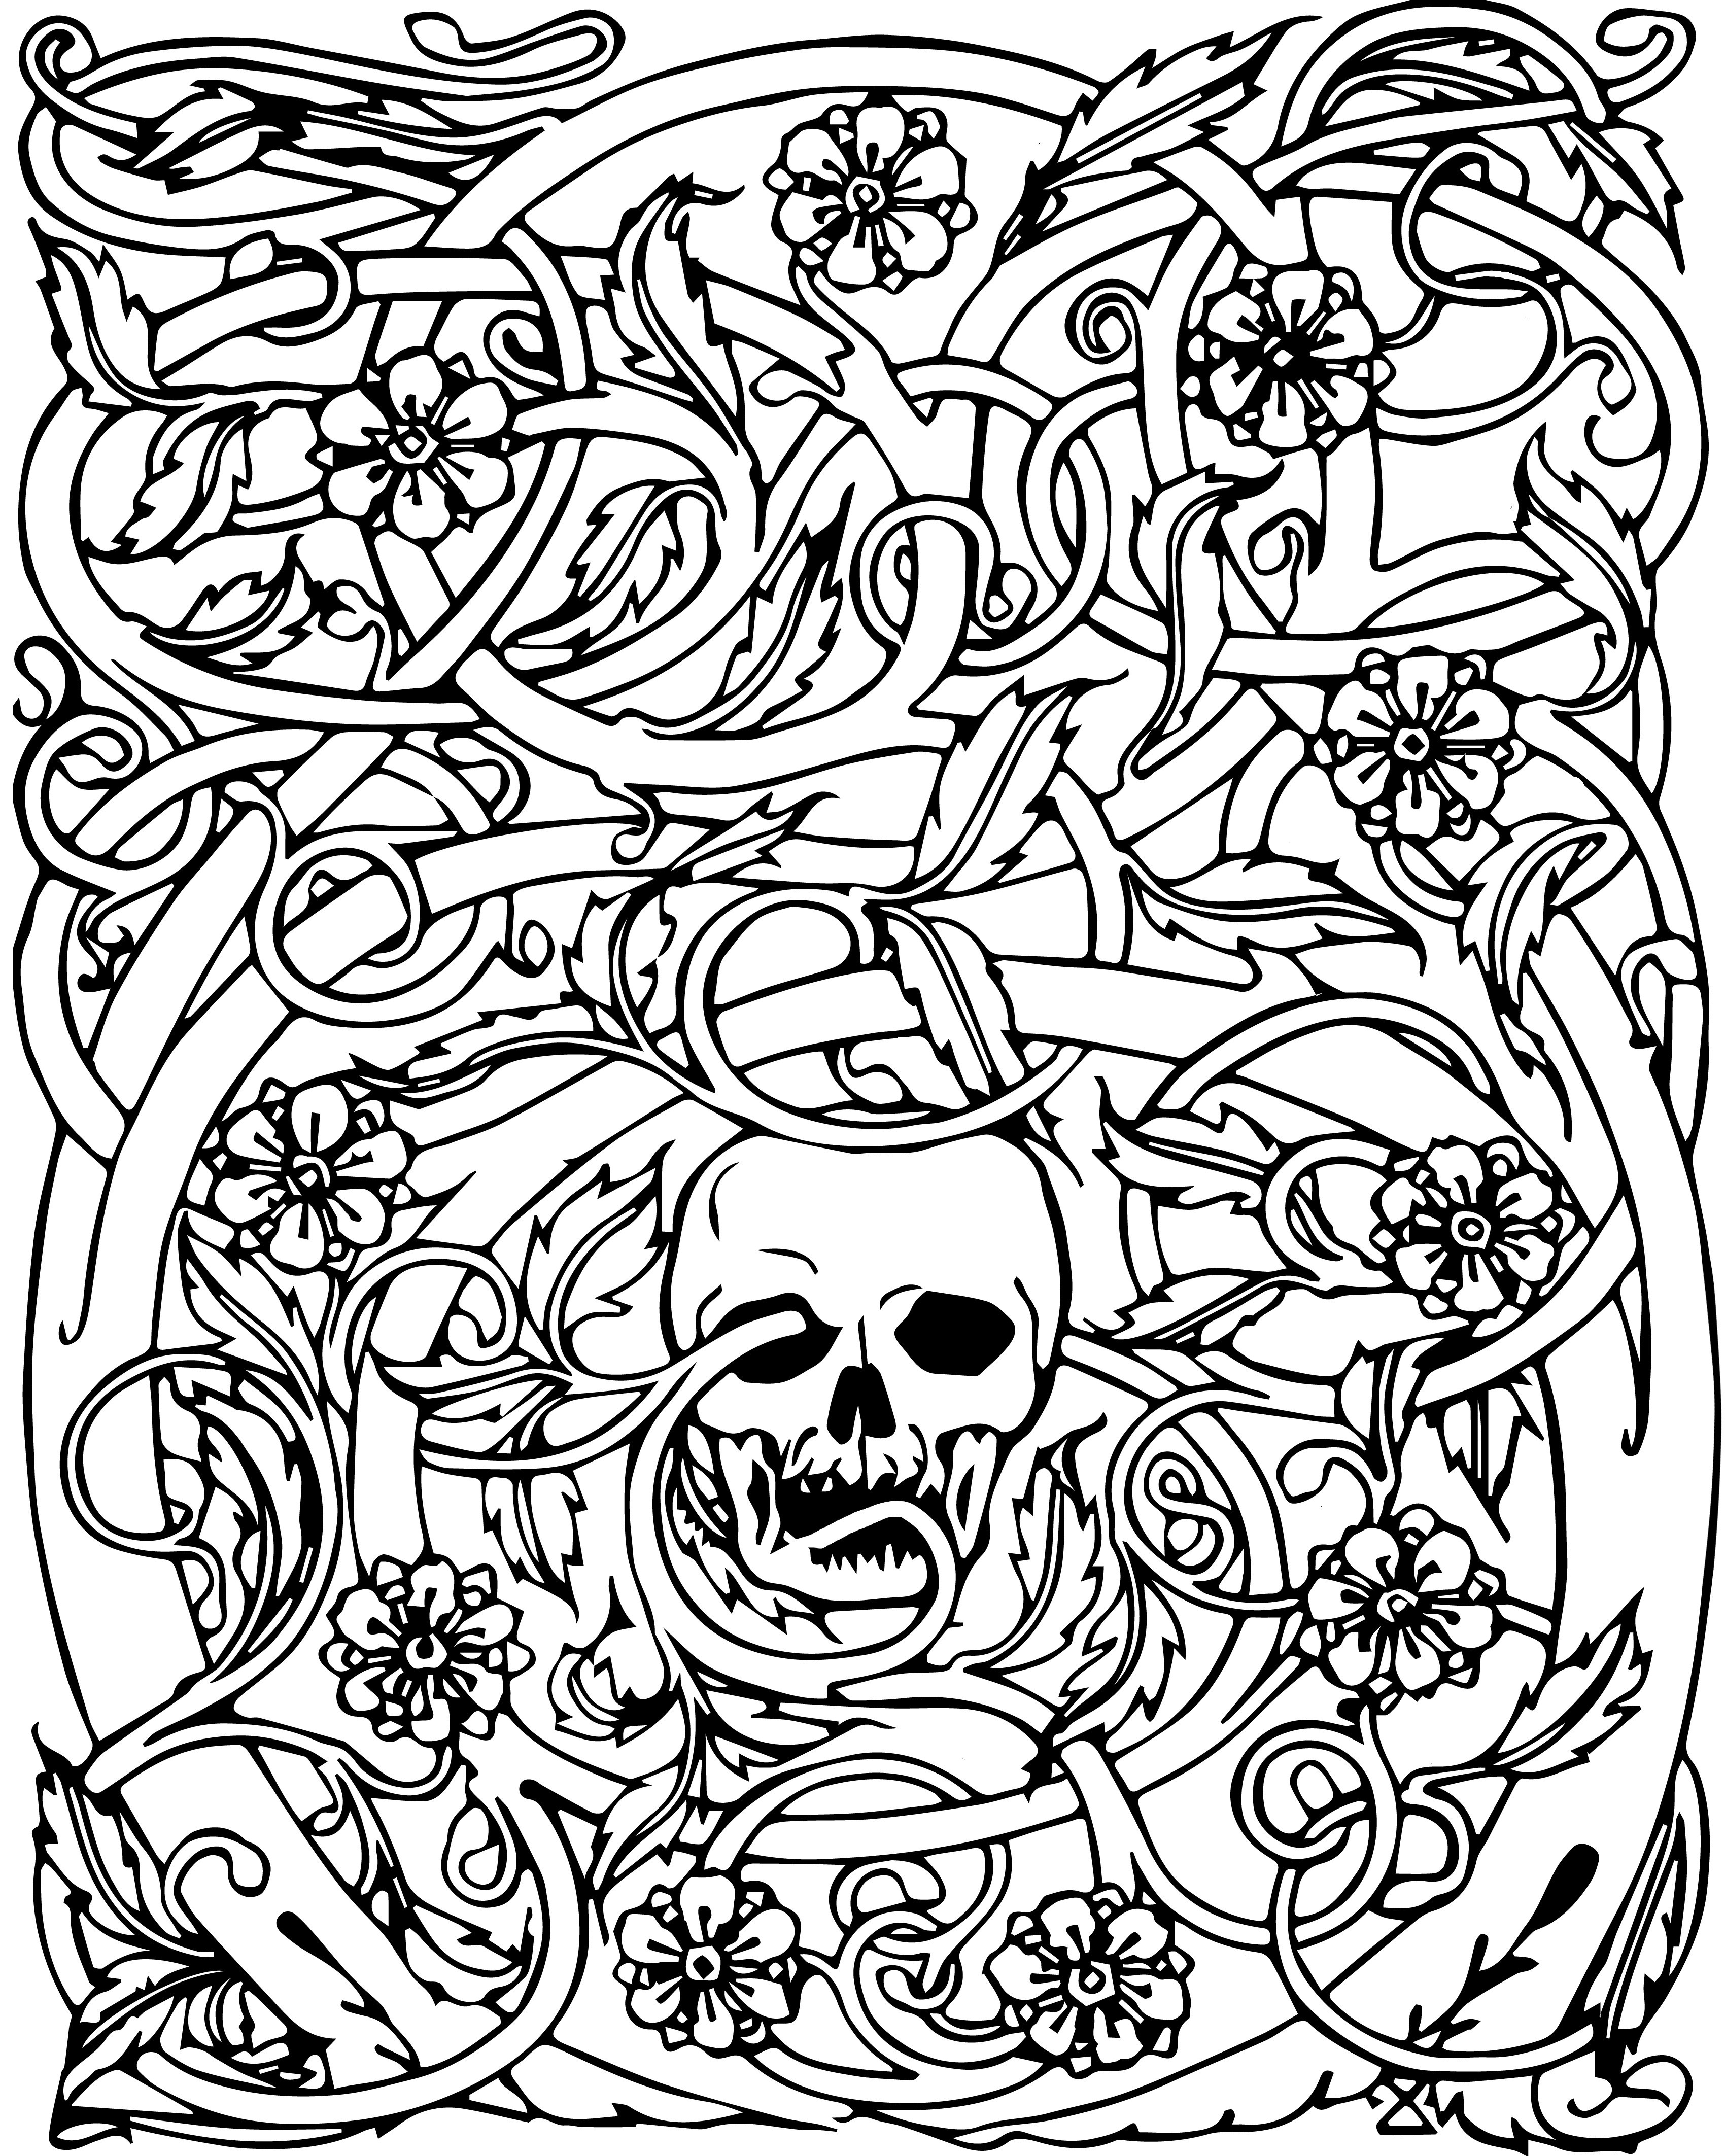 Sugar Skull Girl Coloring Pages  Collection 19t - Free Download